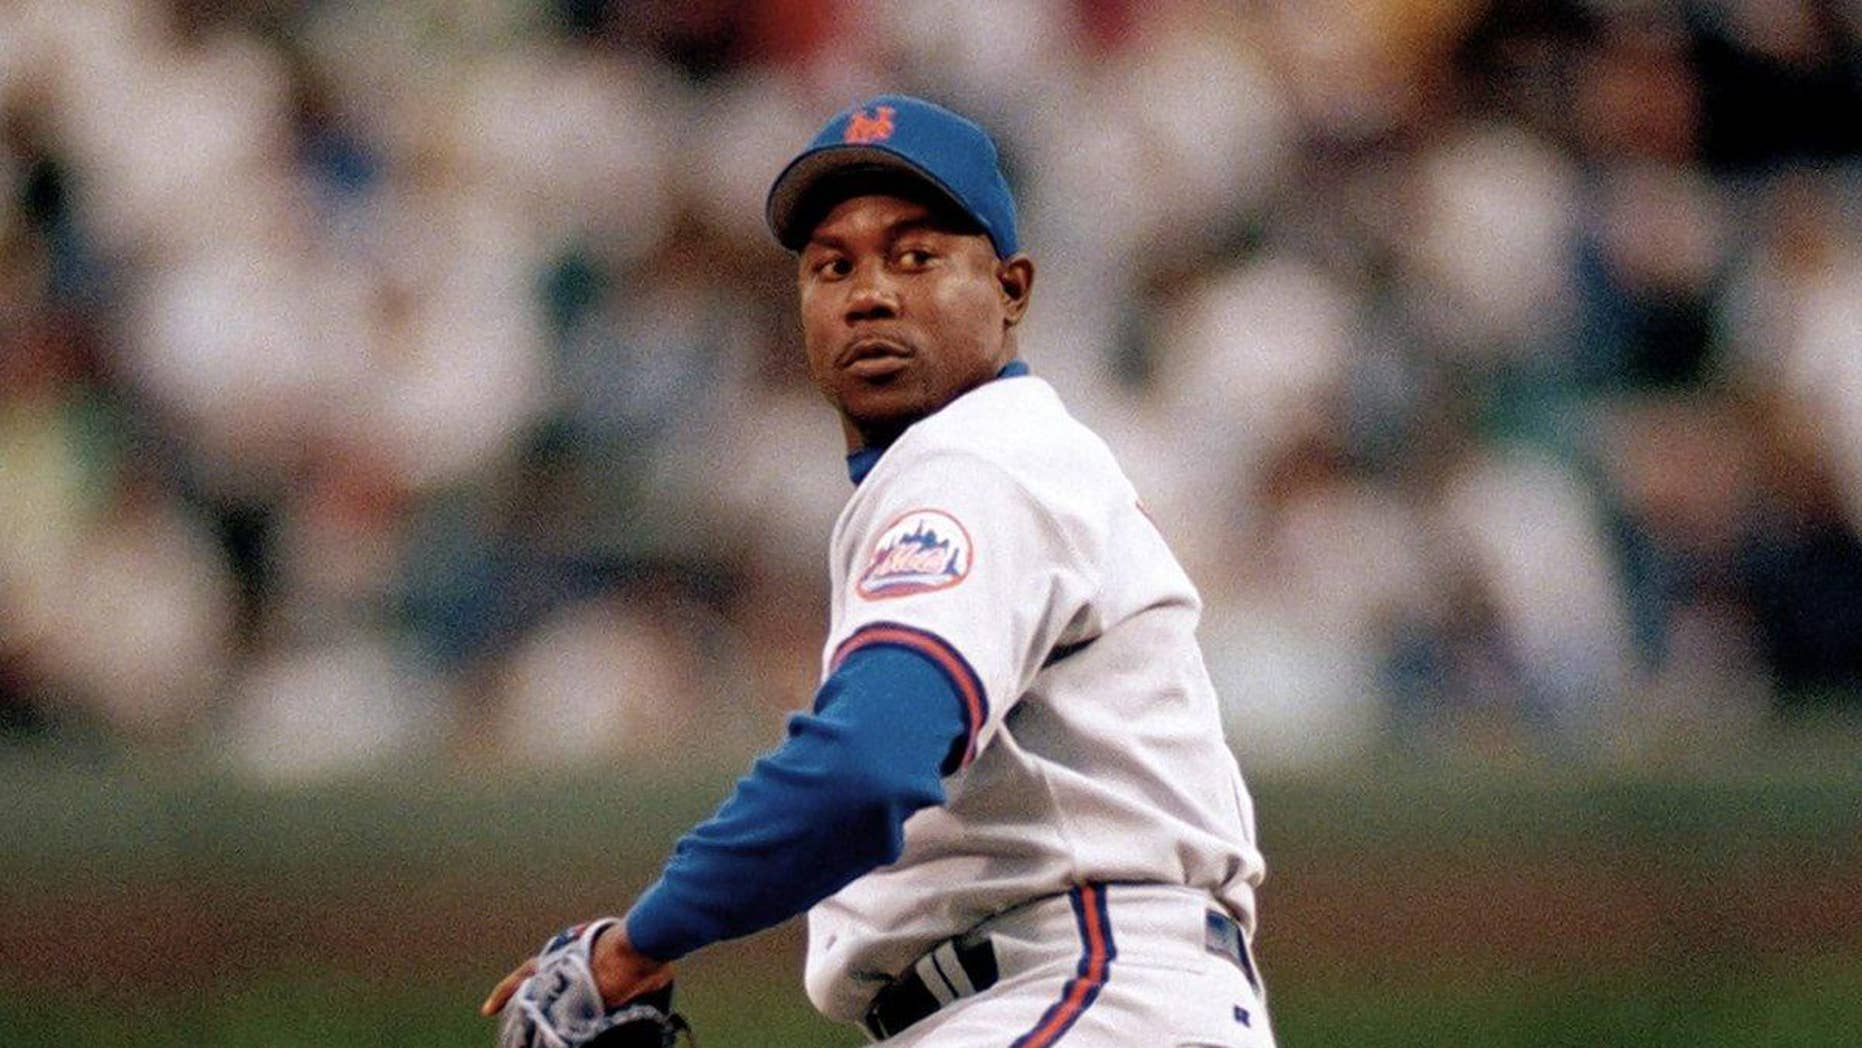 Anthony Young pitched for the Mets from 1991-1993.